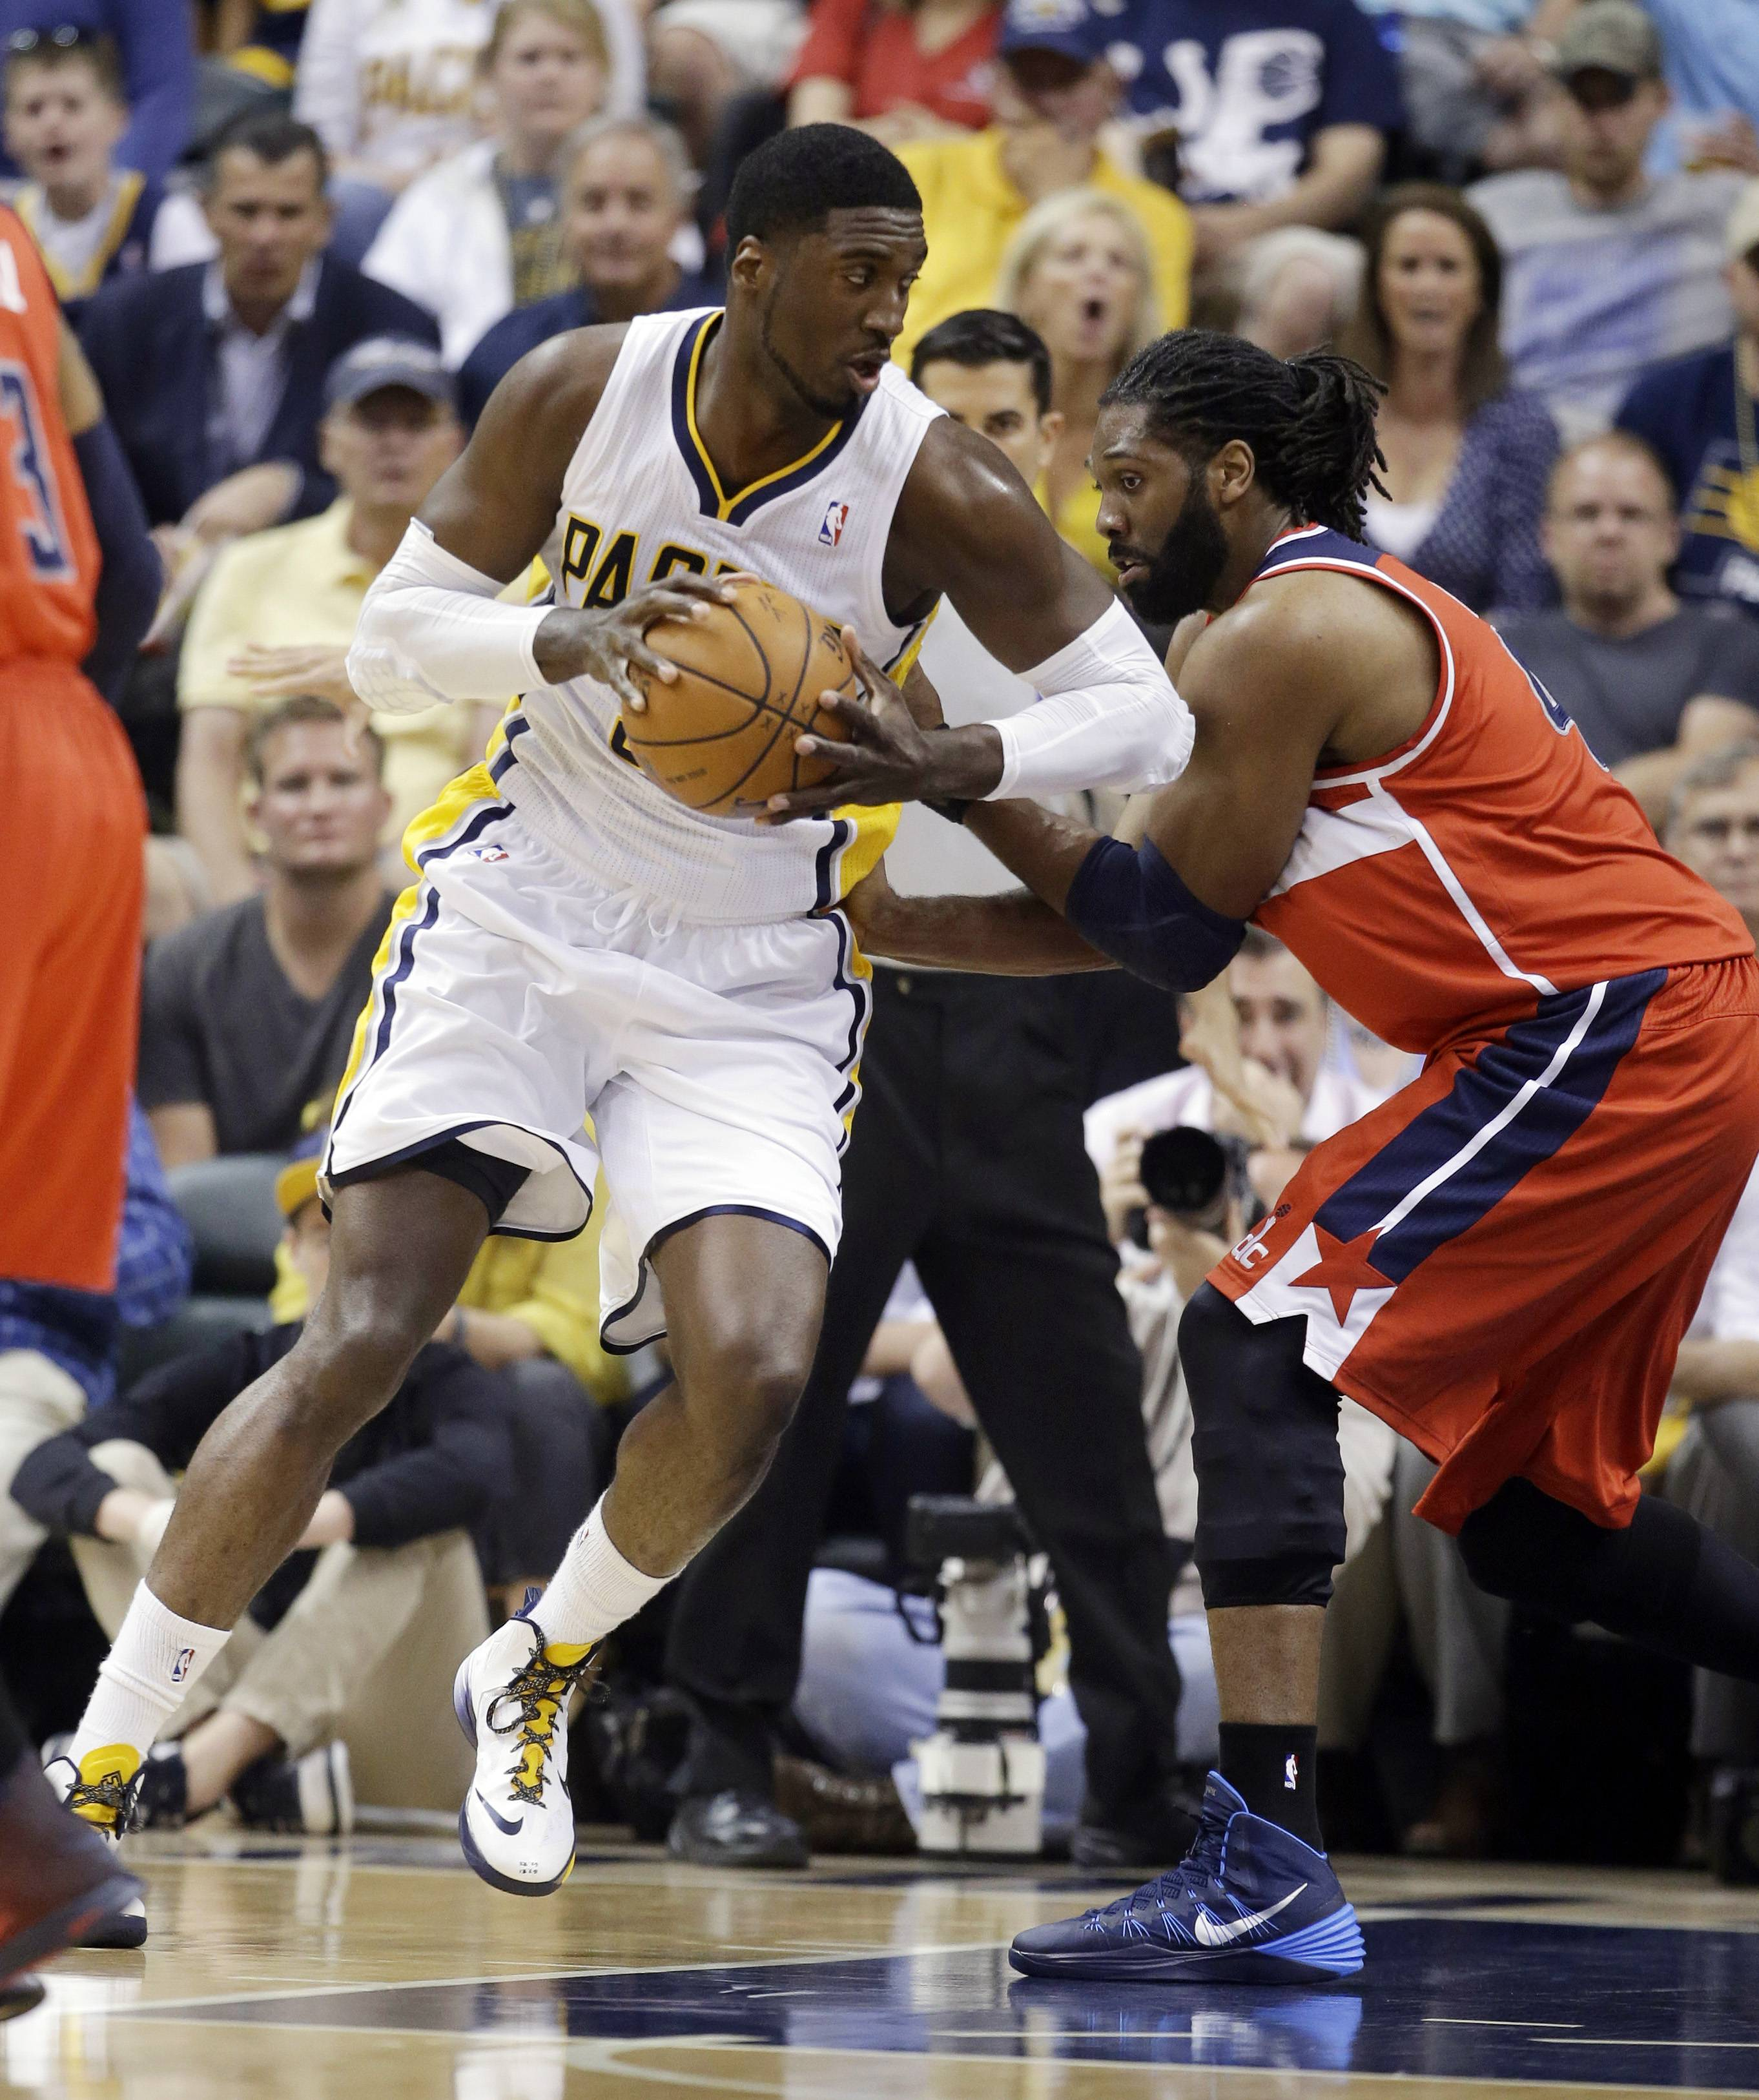 Indiana Pacers center Roy Hibbert, left, drives on Washington Wizards forward Nene Hilario during the first half of game 2 of the Eastern Conference semifinal NBA basketball playoff series Wednesday, May 7, 2014, in Indianapolis.